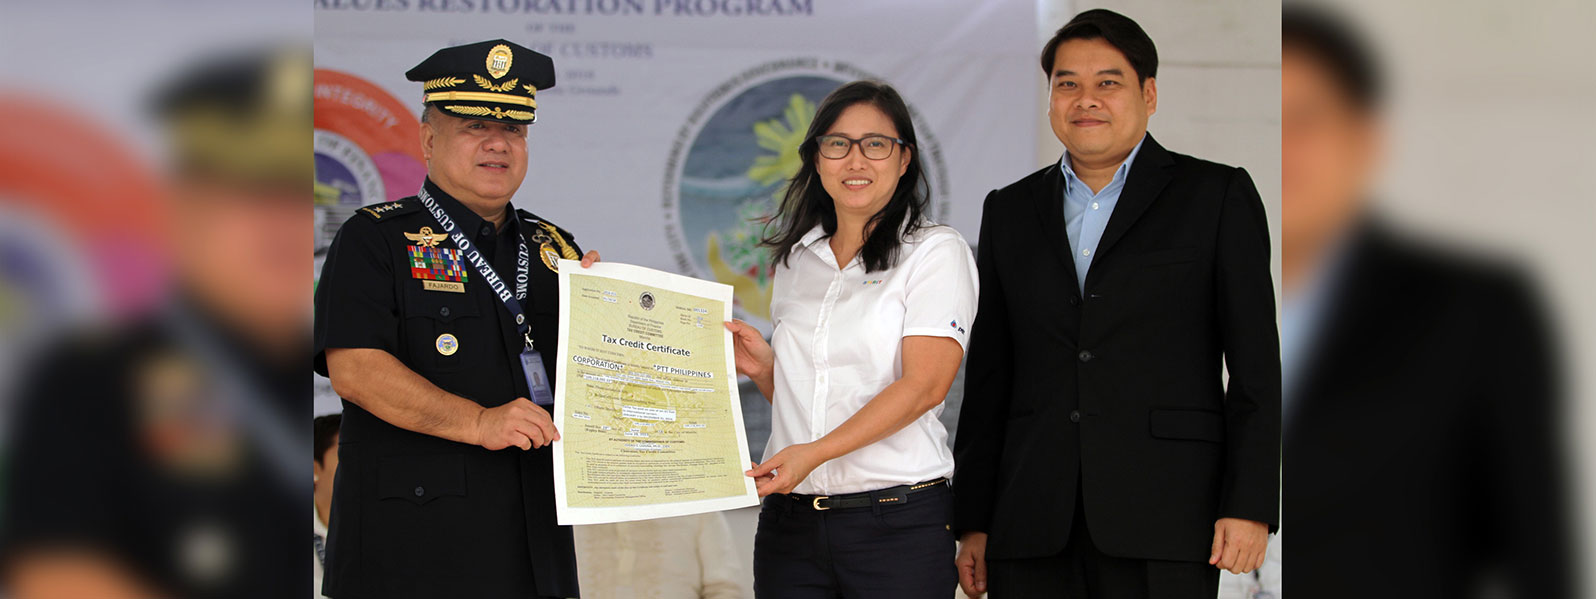 TOP TAXPAYER PTT RECEIVES TAX CREDIT CERTIFICATE FROM BOC